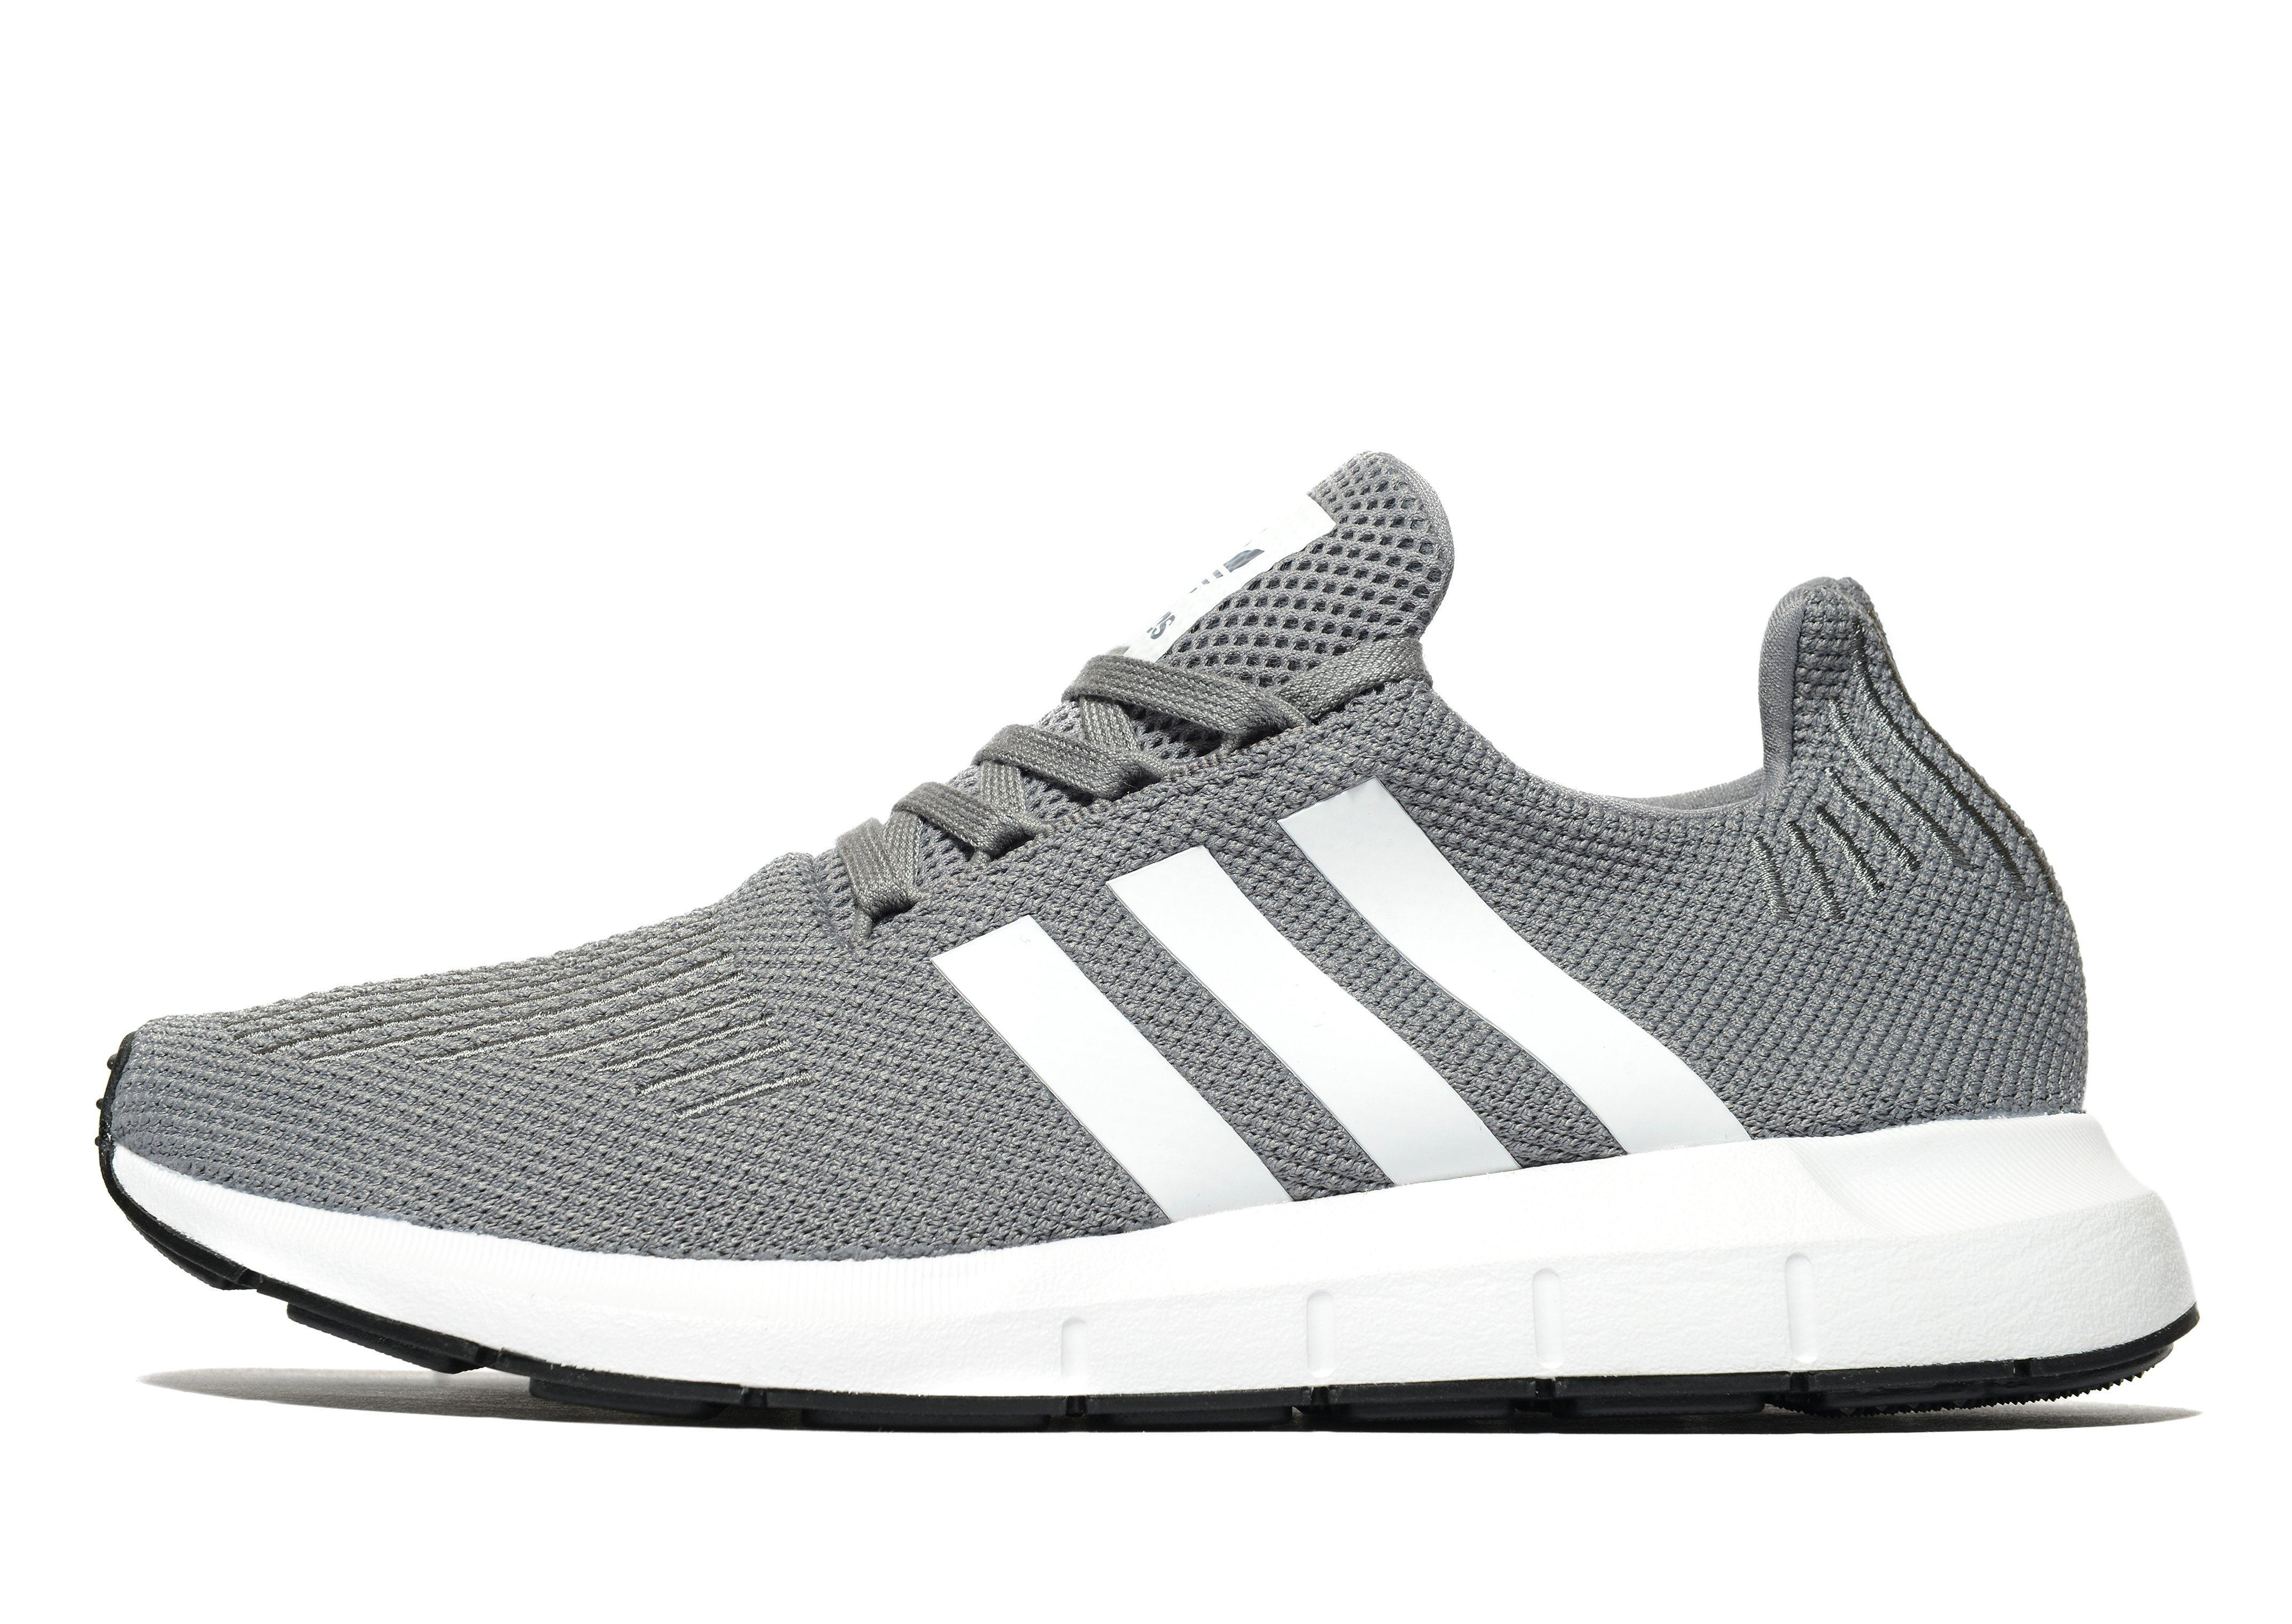 fe1eb148f1a52 Adidas Originals Swift Run in Gray for Men - Lyst